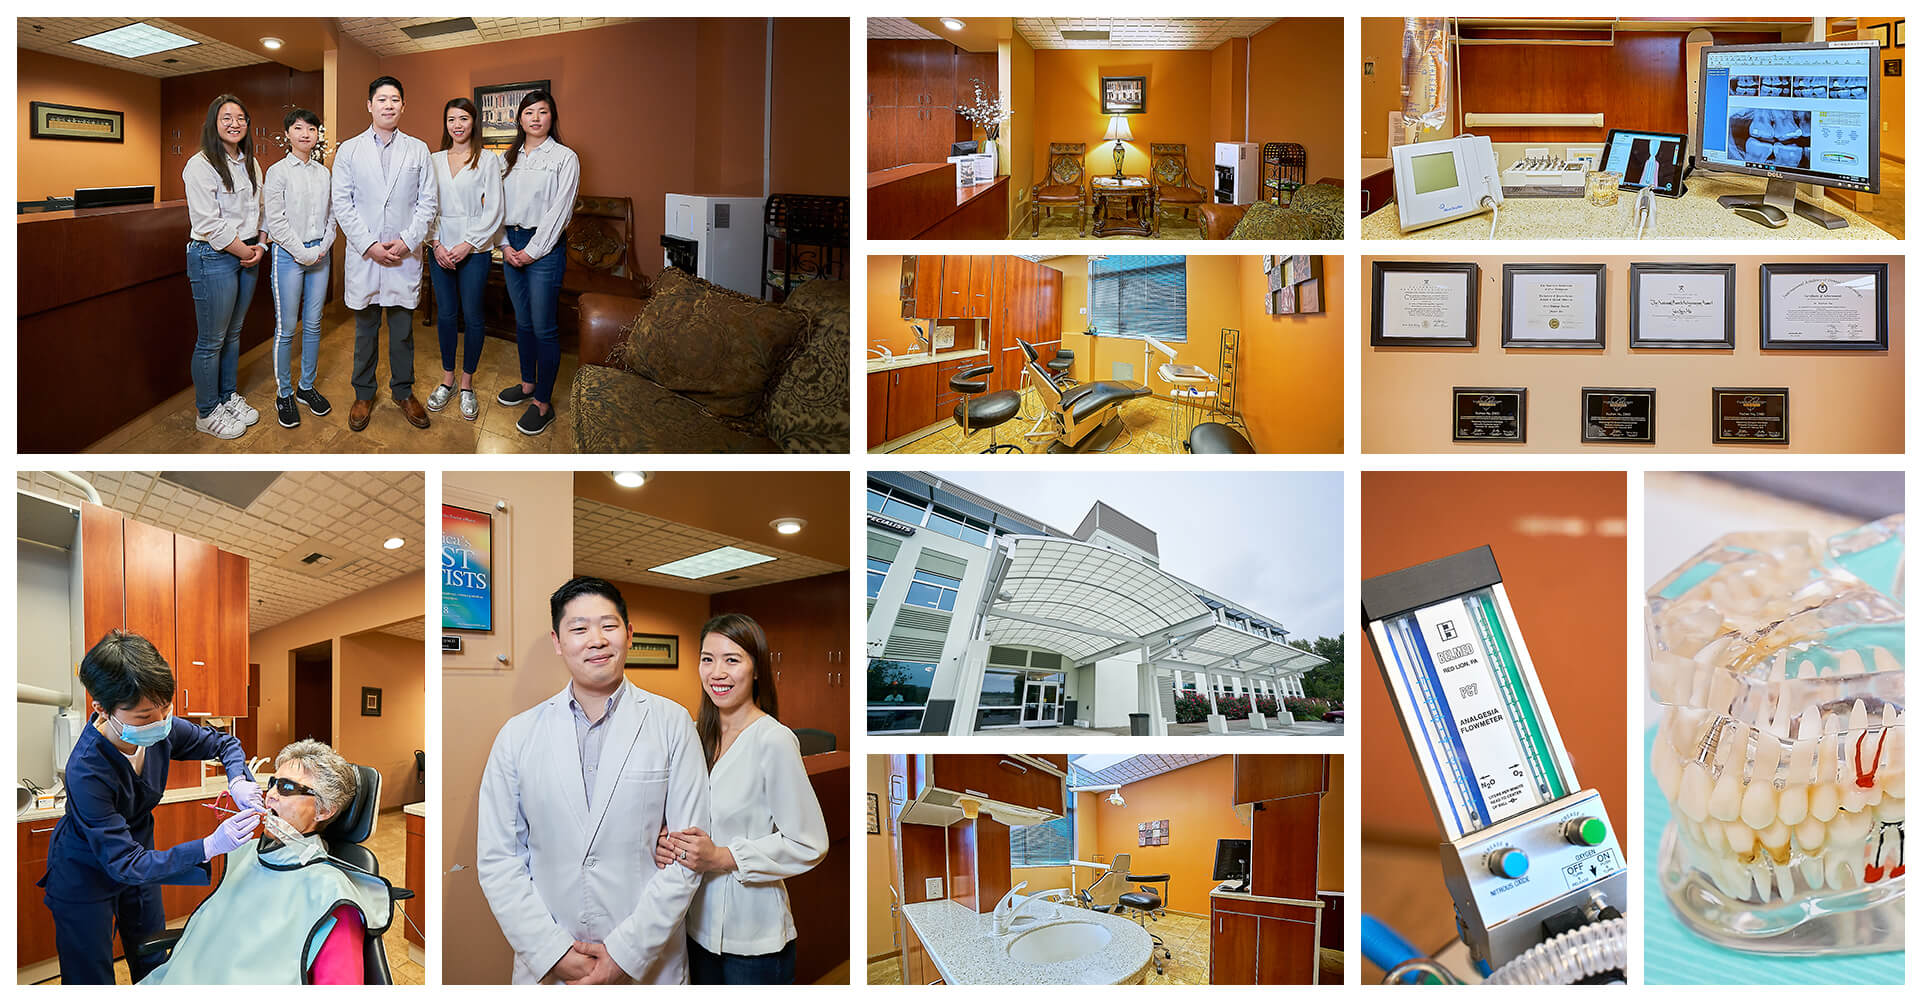 A collage showing our the entire dental team, our dentist office in Renton, WA, our building and our technologies